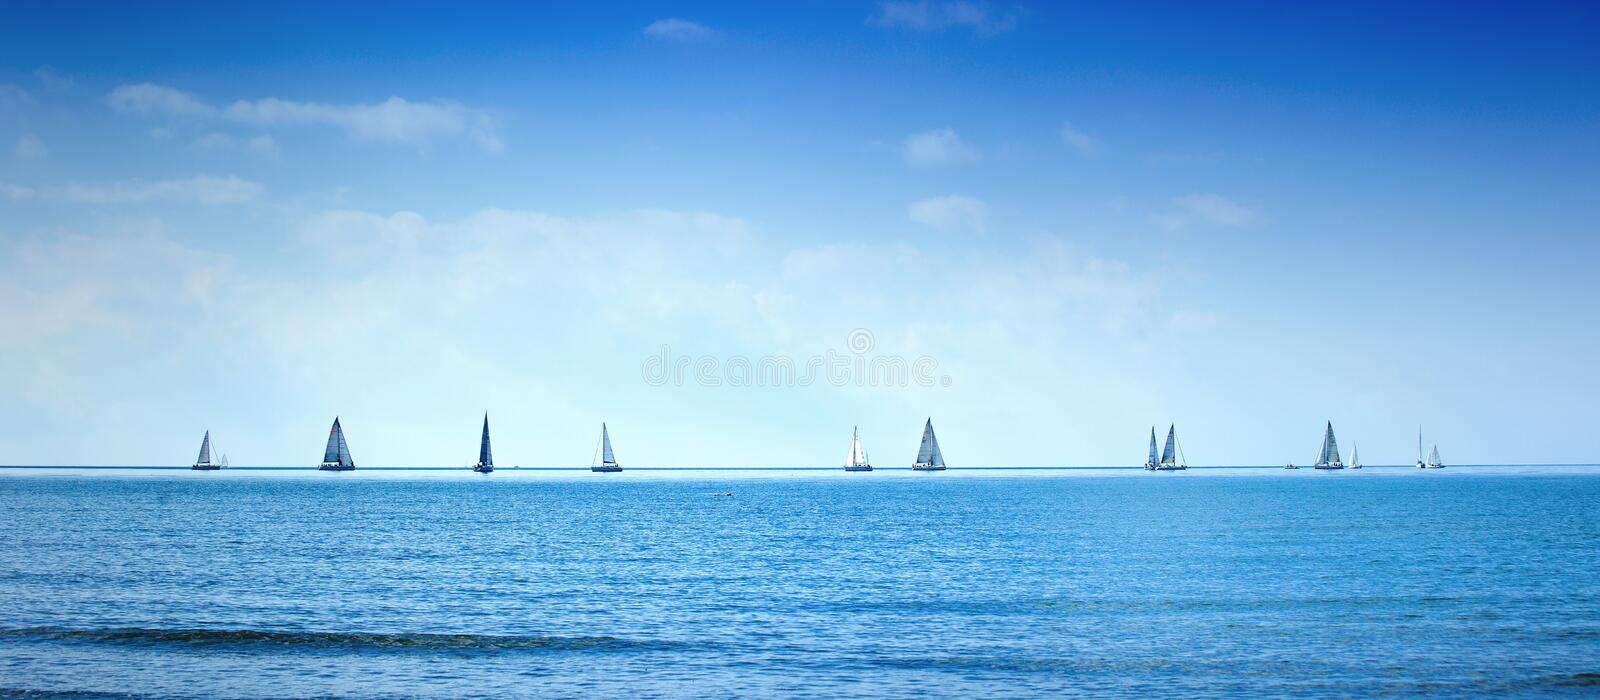 Sailing boat yacht regatta race on sea or ocean water stock photo